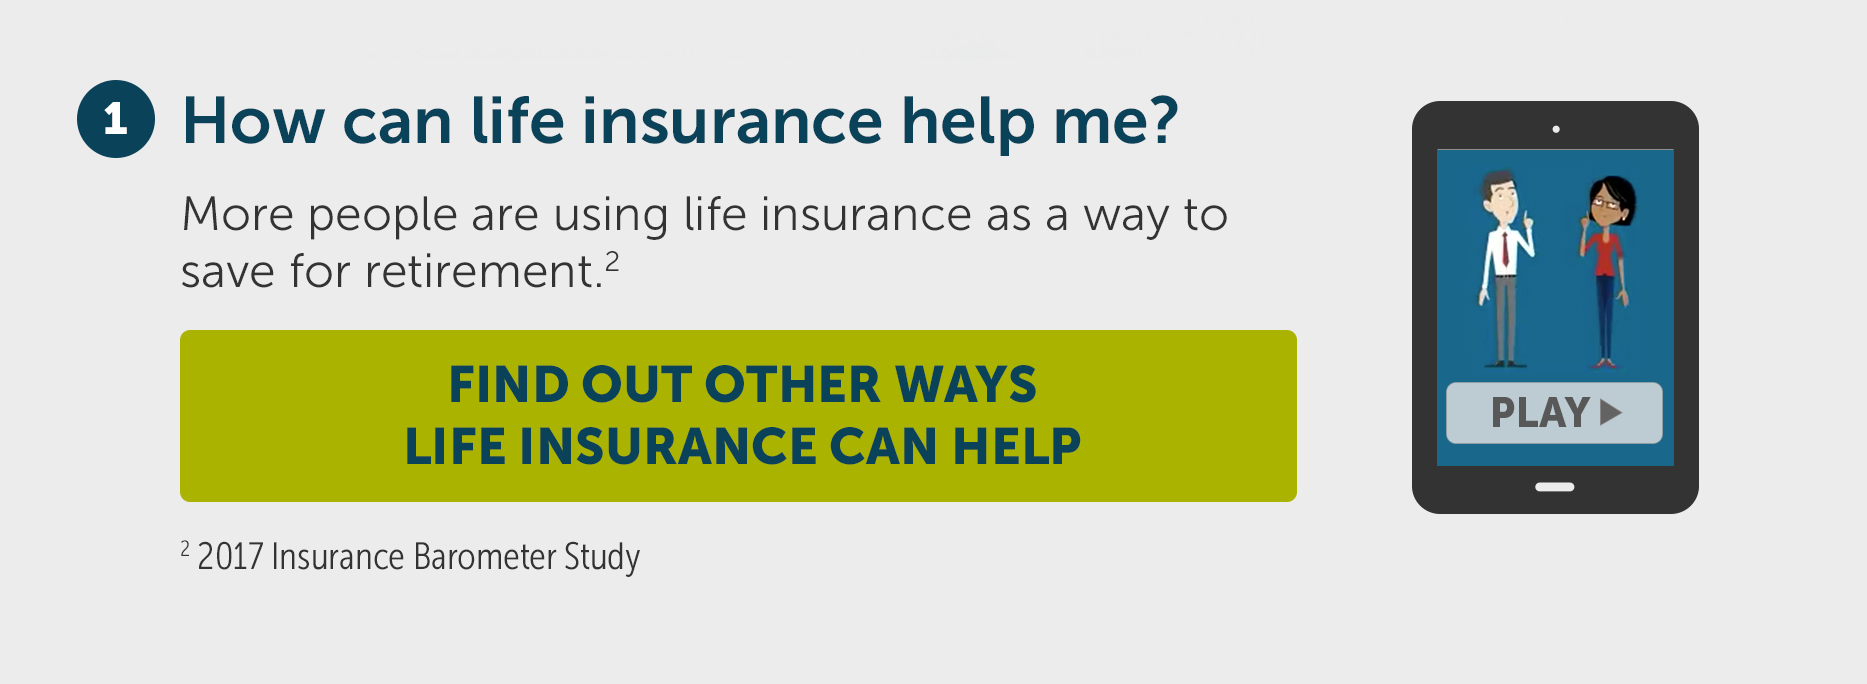 How can life insurnace help me?